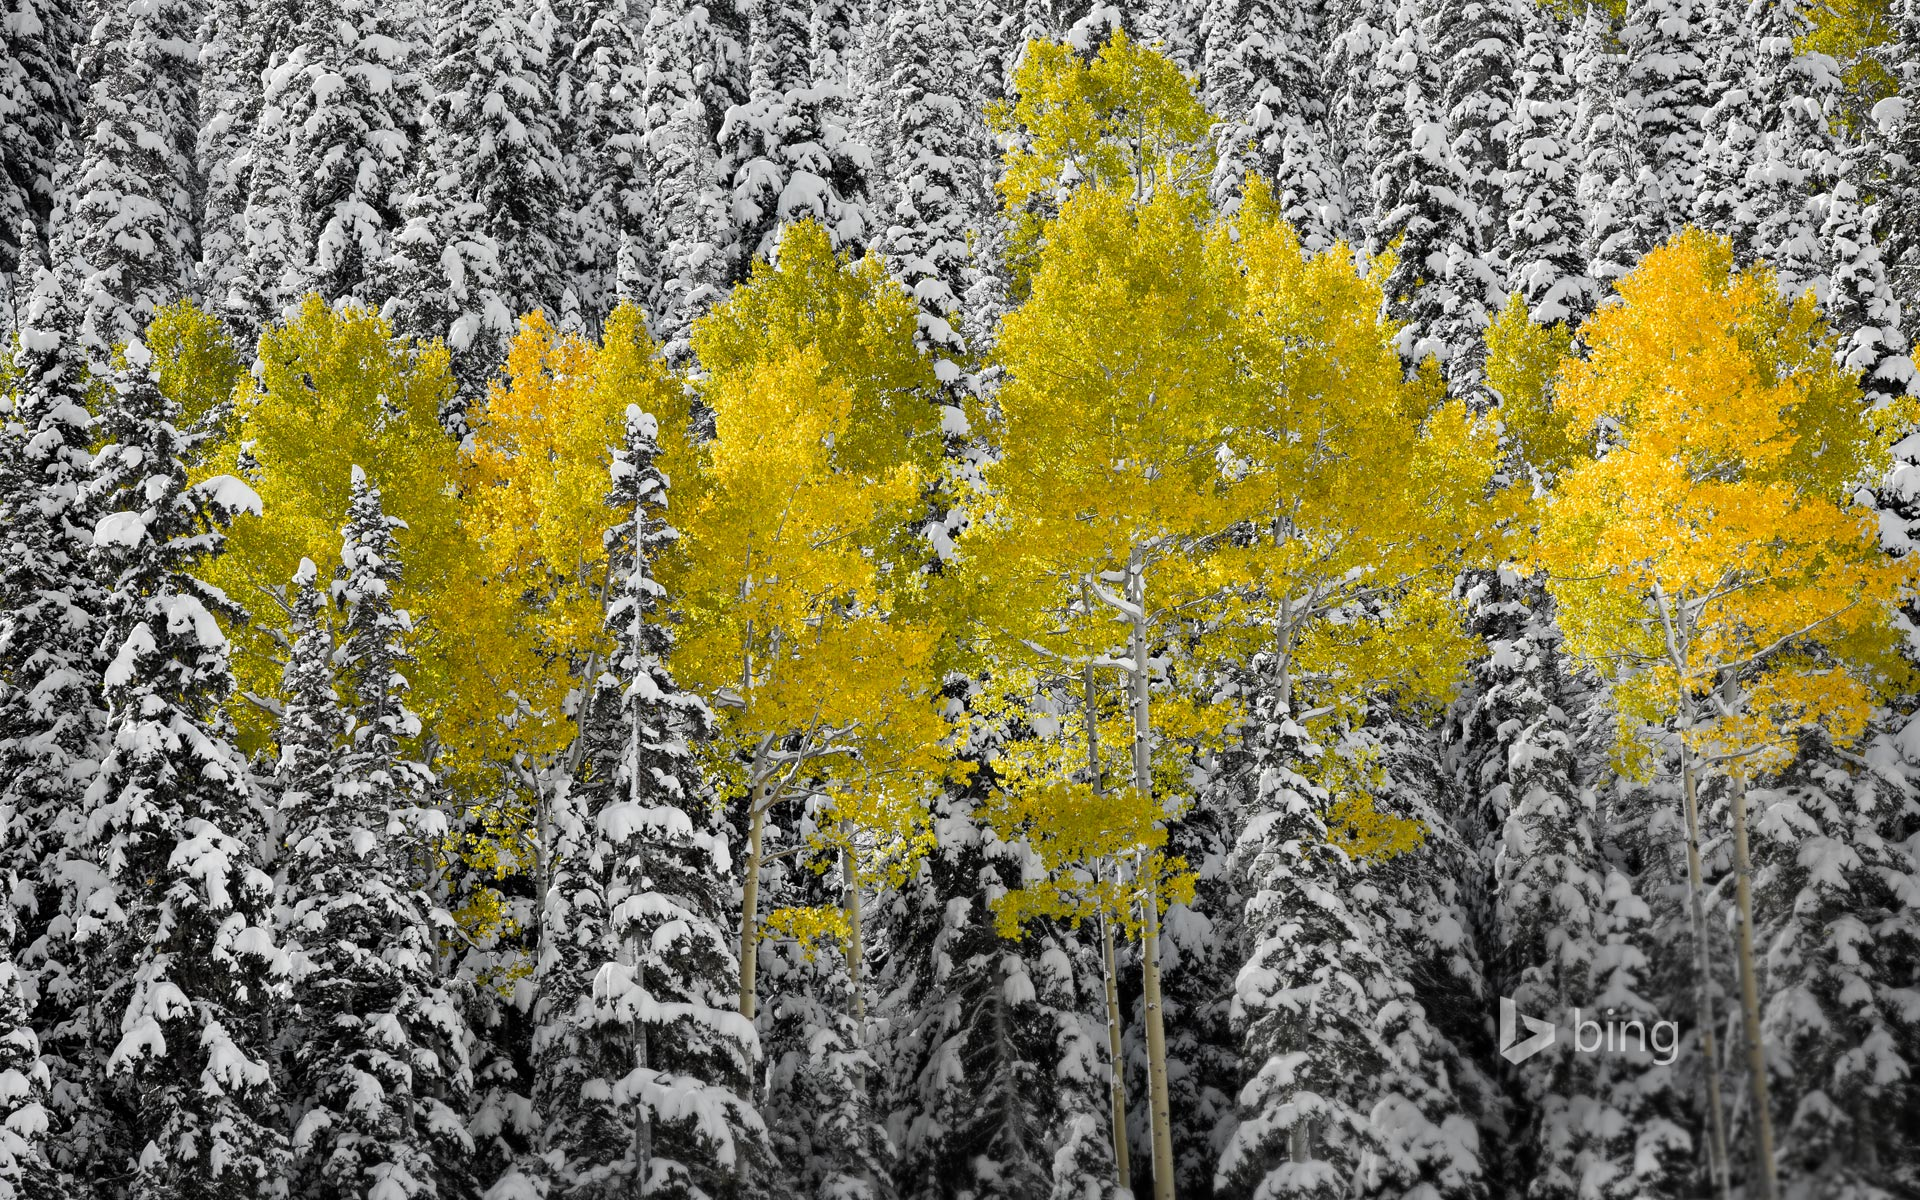 Aspen trees in autumn foliage, San Juan Mountains near Telluride, Colorado